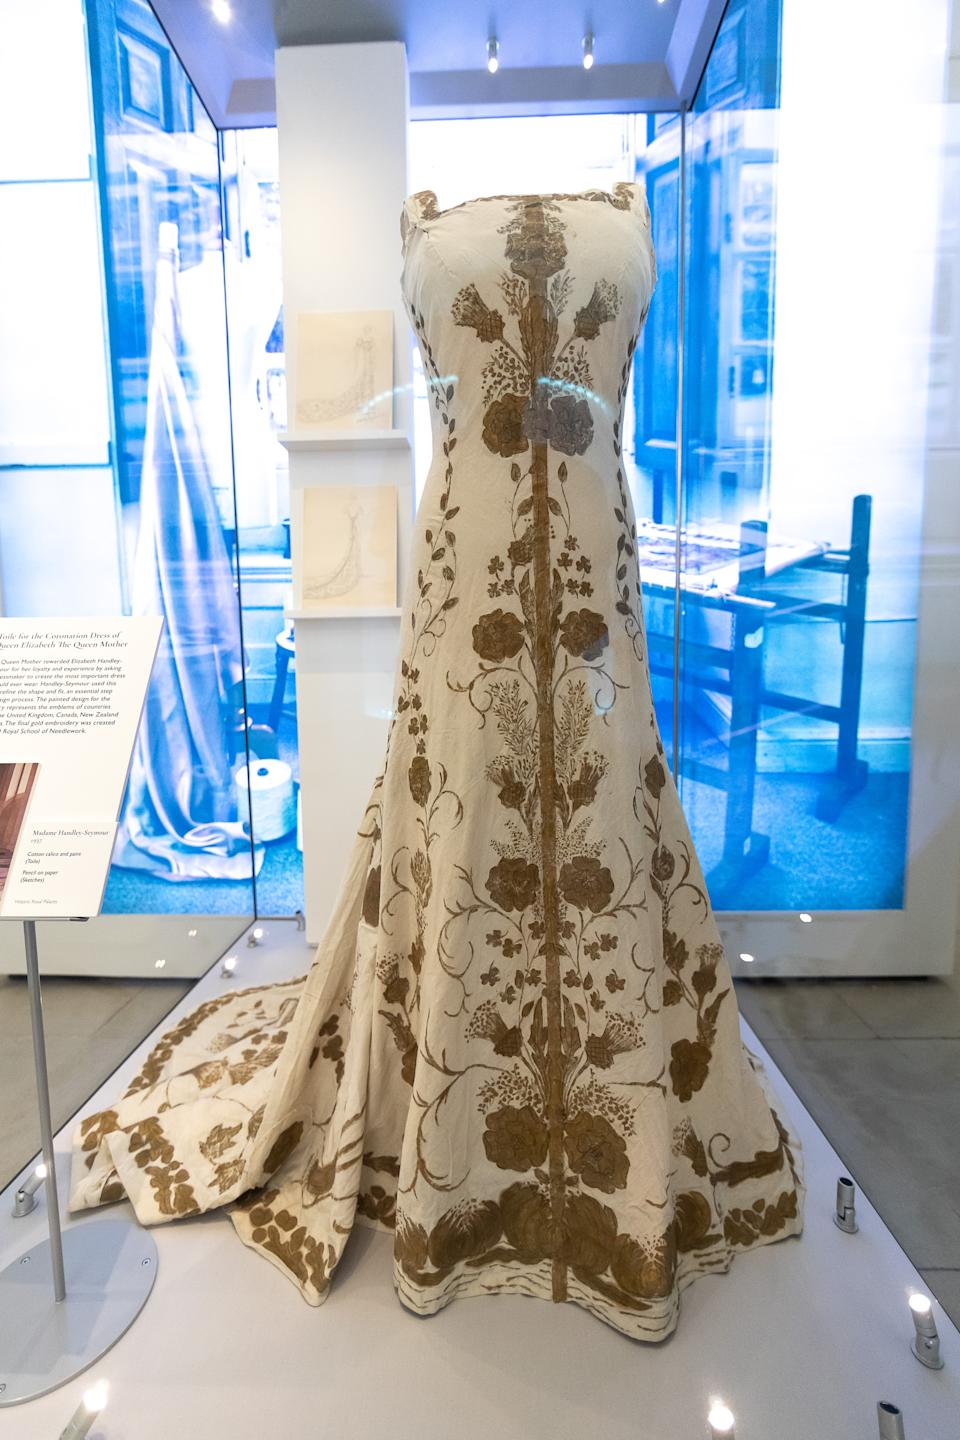 LONDON, ENGLAND - JUNE 02: A rare surviving toile for the 1937 coronation gown of Queen Elizabeth The Queen Mother; consort of King George VI. Created by London based court designer Madame Handley-Seymour on display during the